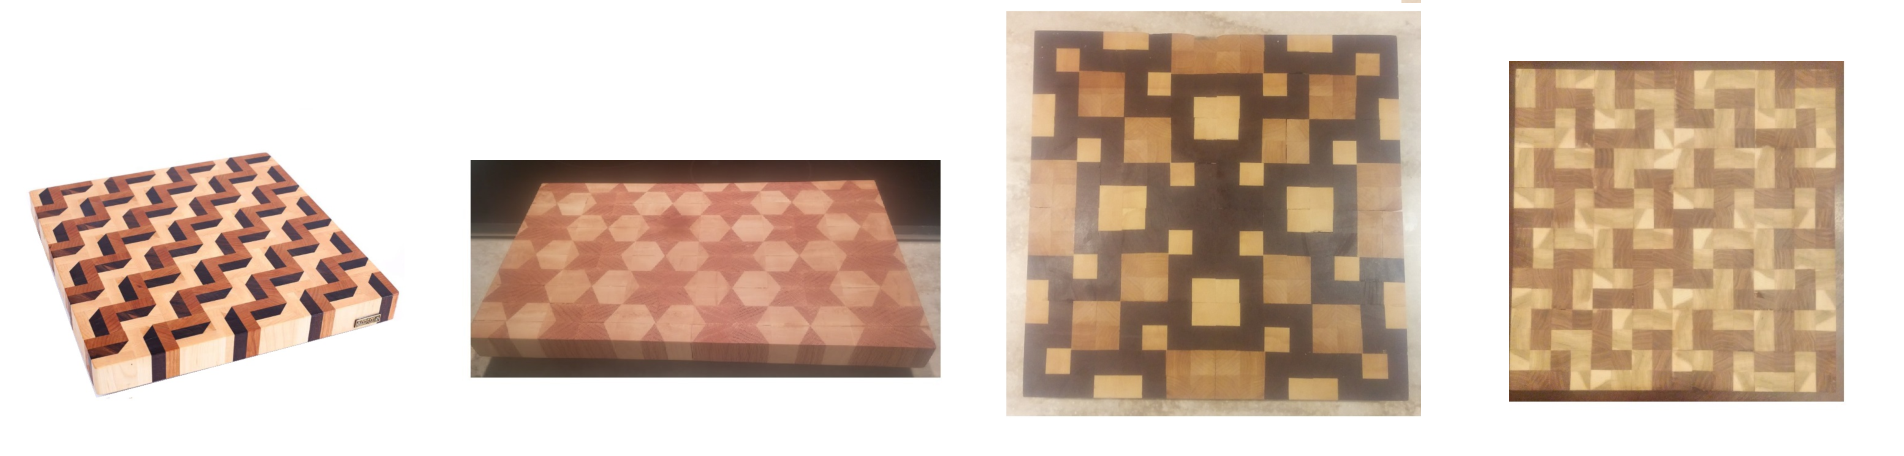 Mathematics on the chopping block for Puzzle cutting board plans